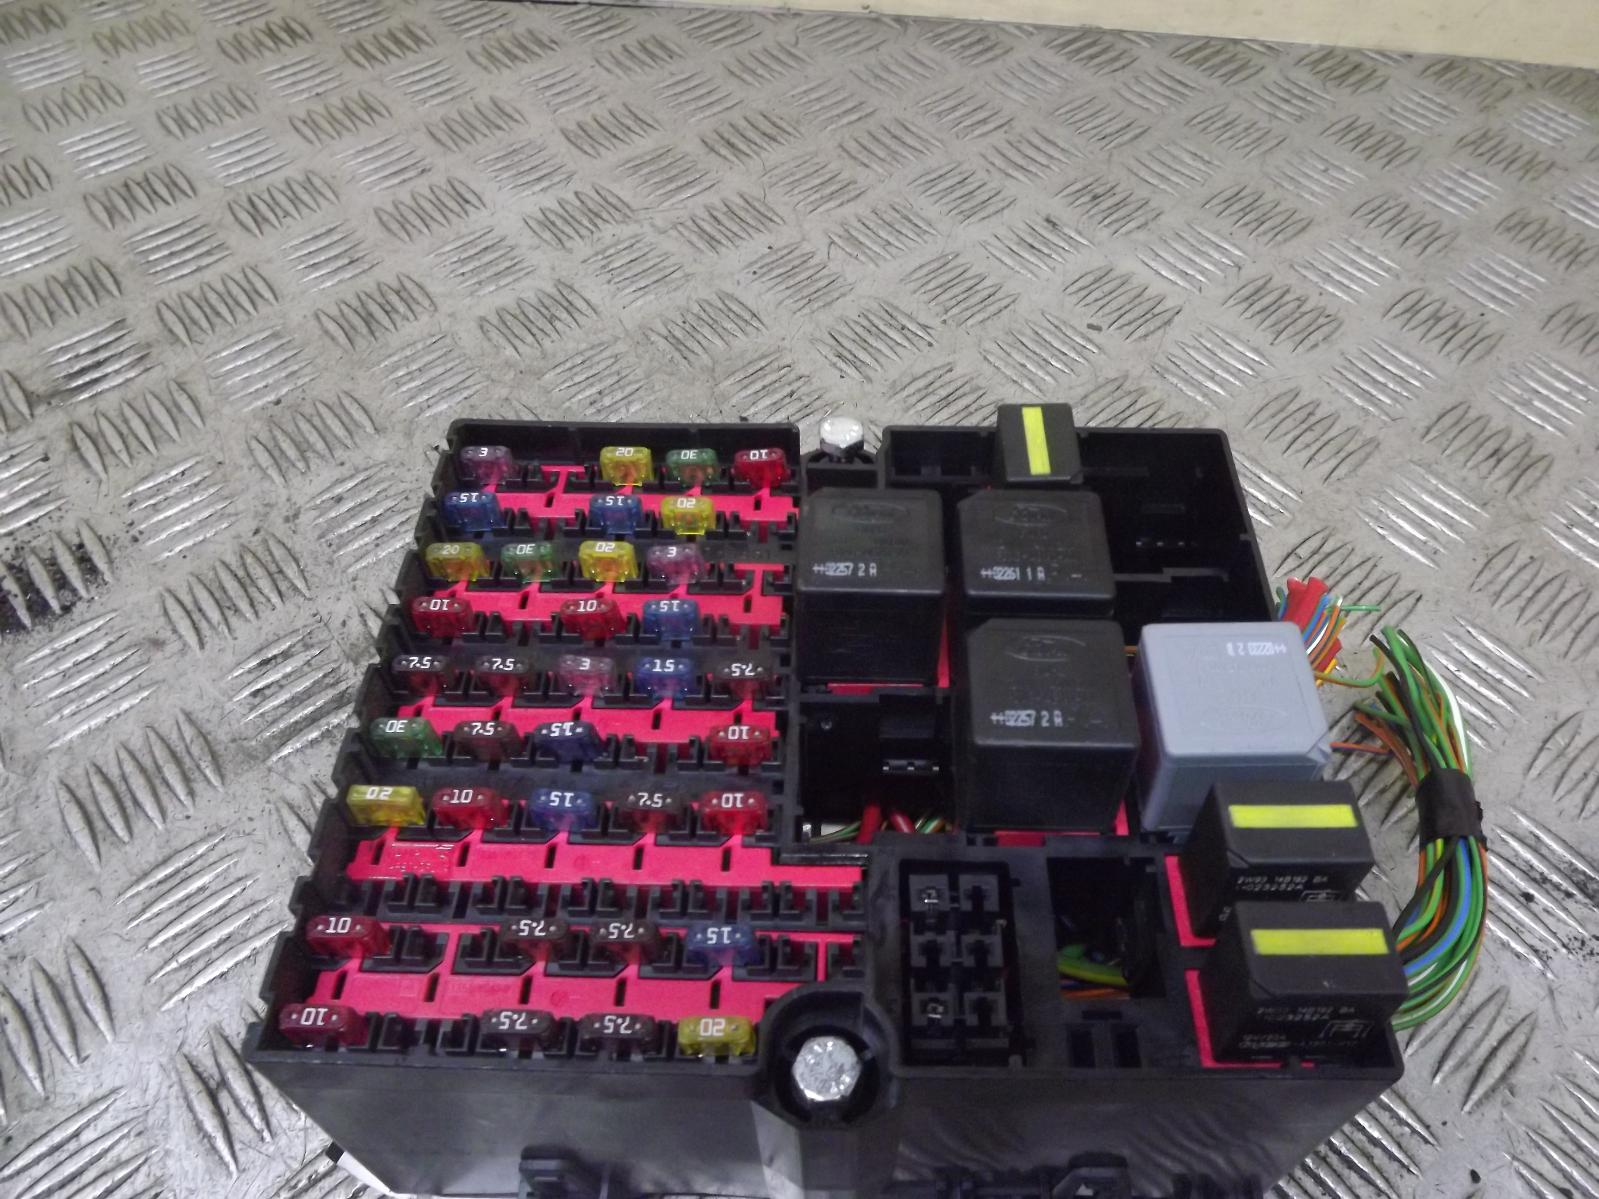 ford fiesta 1 4 petrol interior fuse box fusebox 2002 2008 ebay. Black Bedroom Furniture Sets. Home Design Ideas